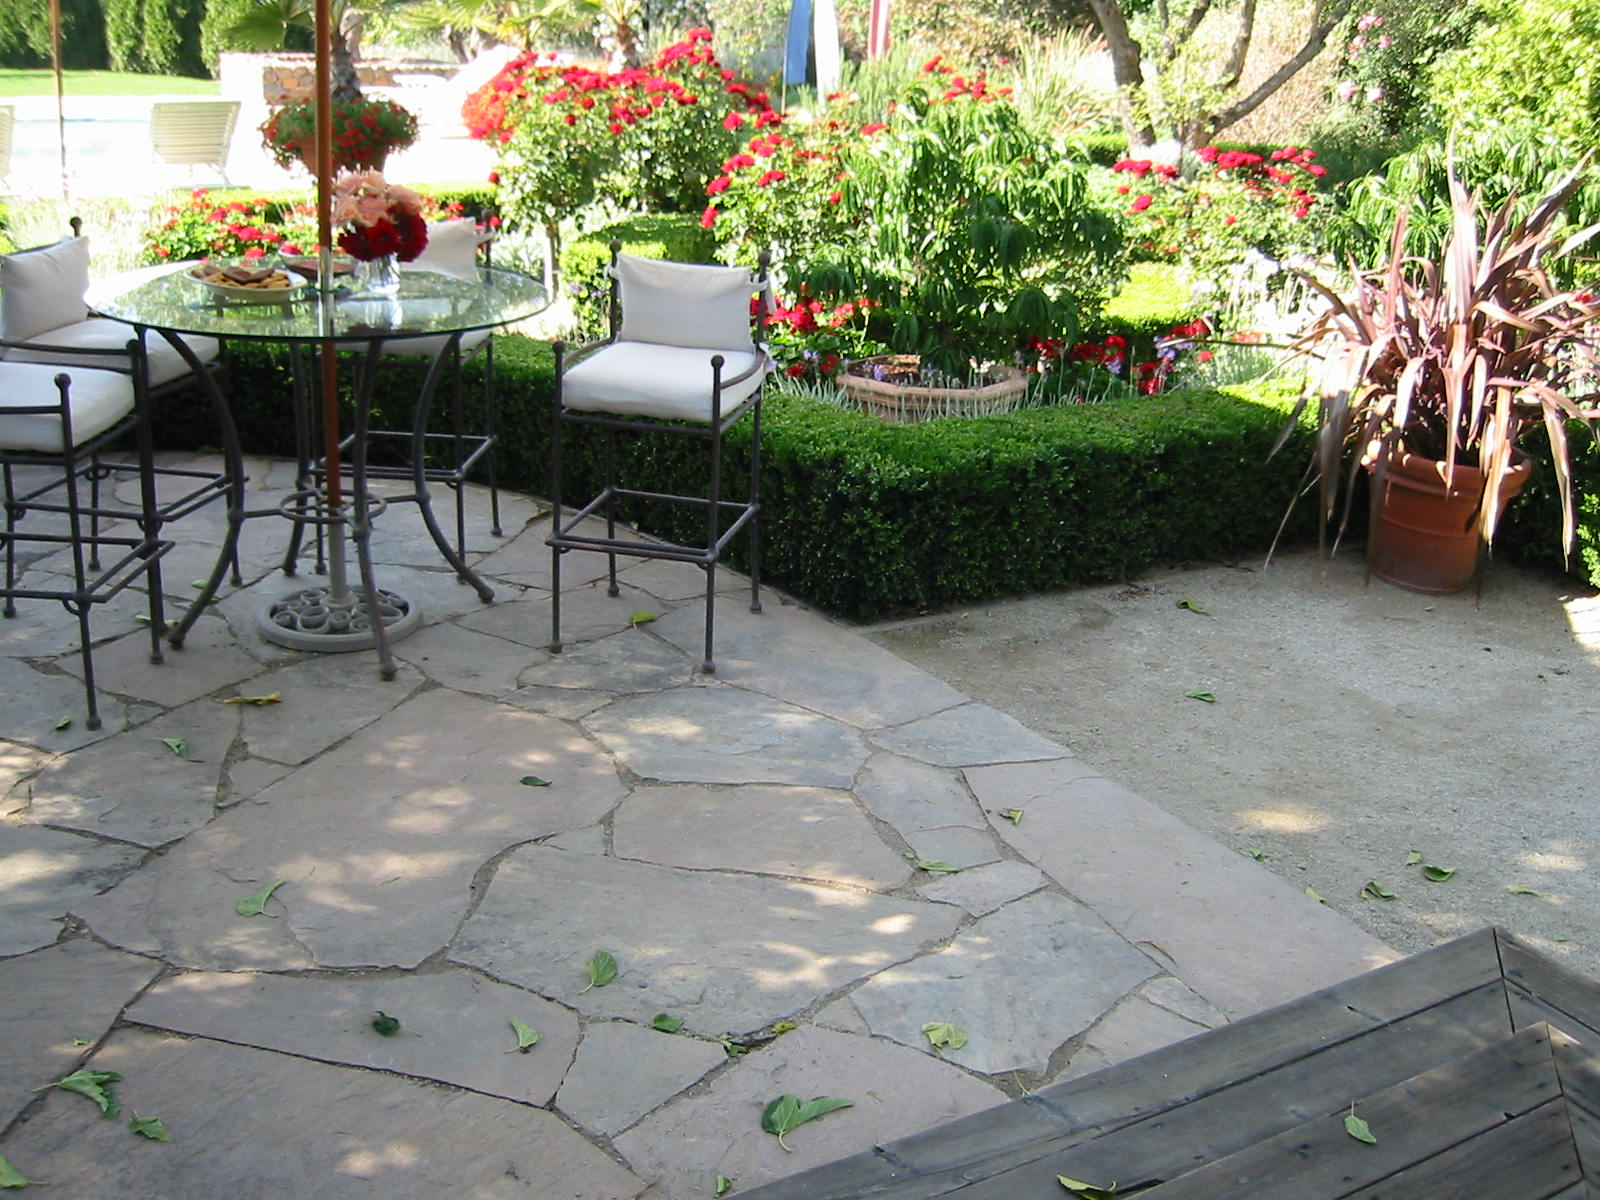 Patios hard and soft the human footprint a proper installation using arizona flagstone with decomposed granite in between you will rarely see solutioingenieria Gallery